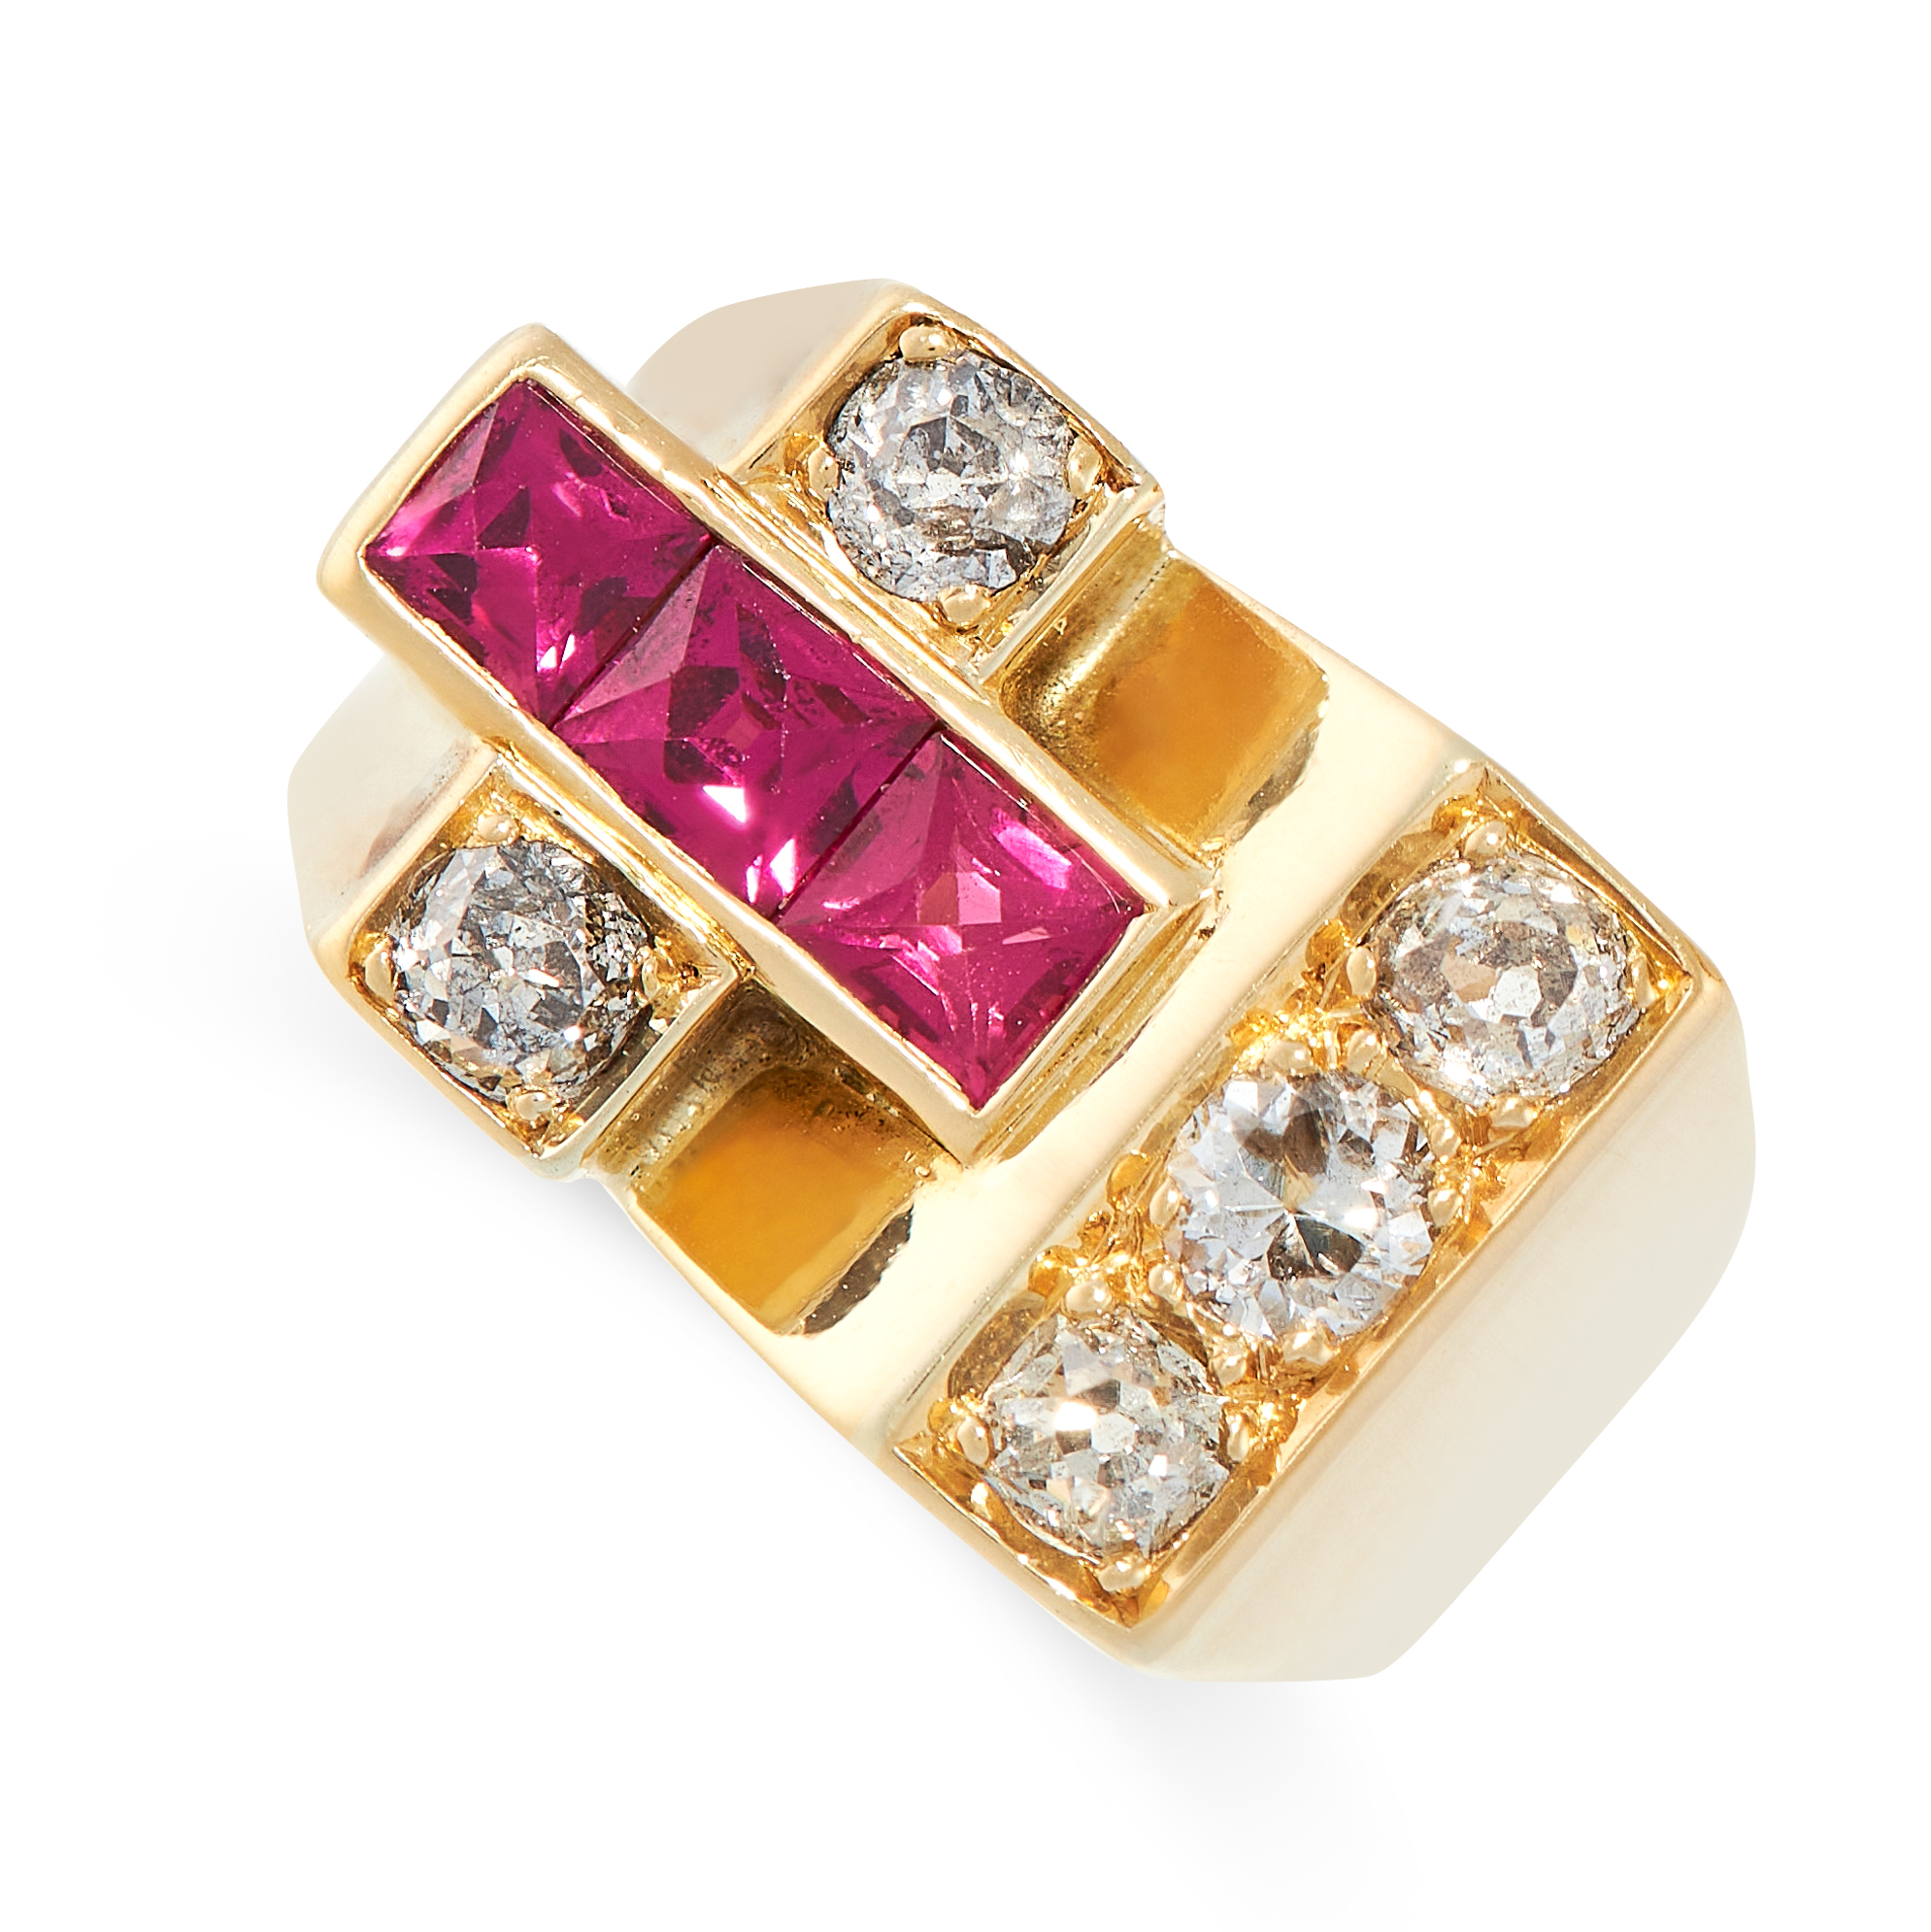 A RETRO DIAMOND AND RUBY RING in 18ct yellow gold, set with three French cut synthetic rubies and